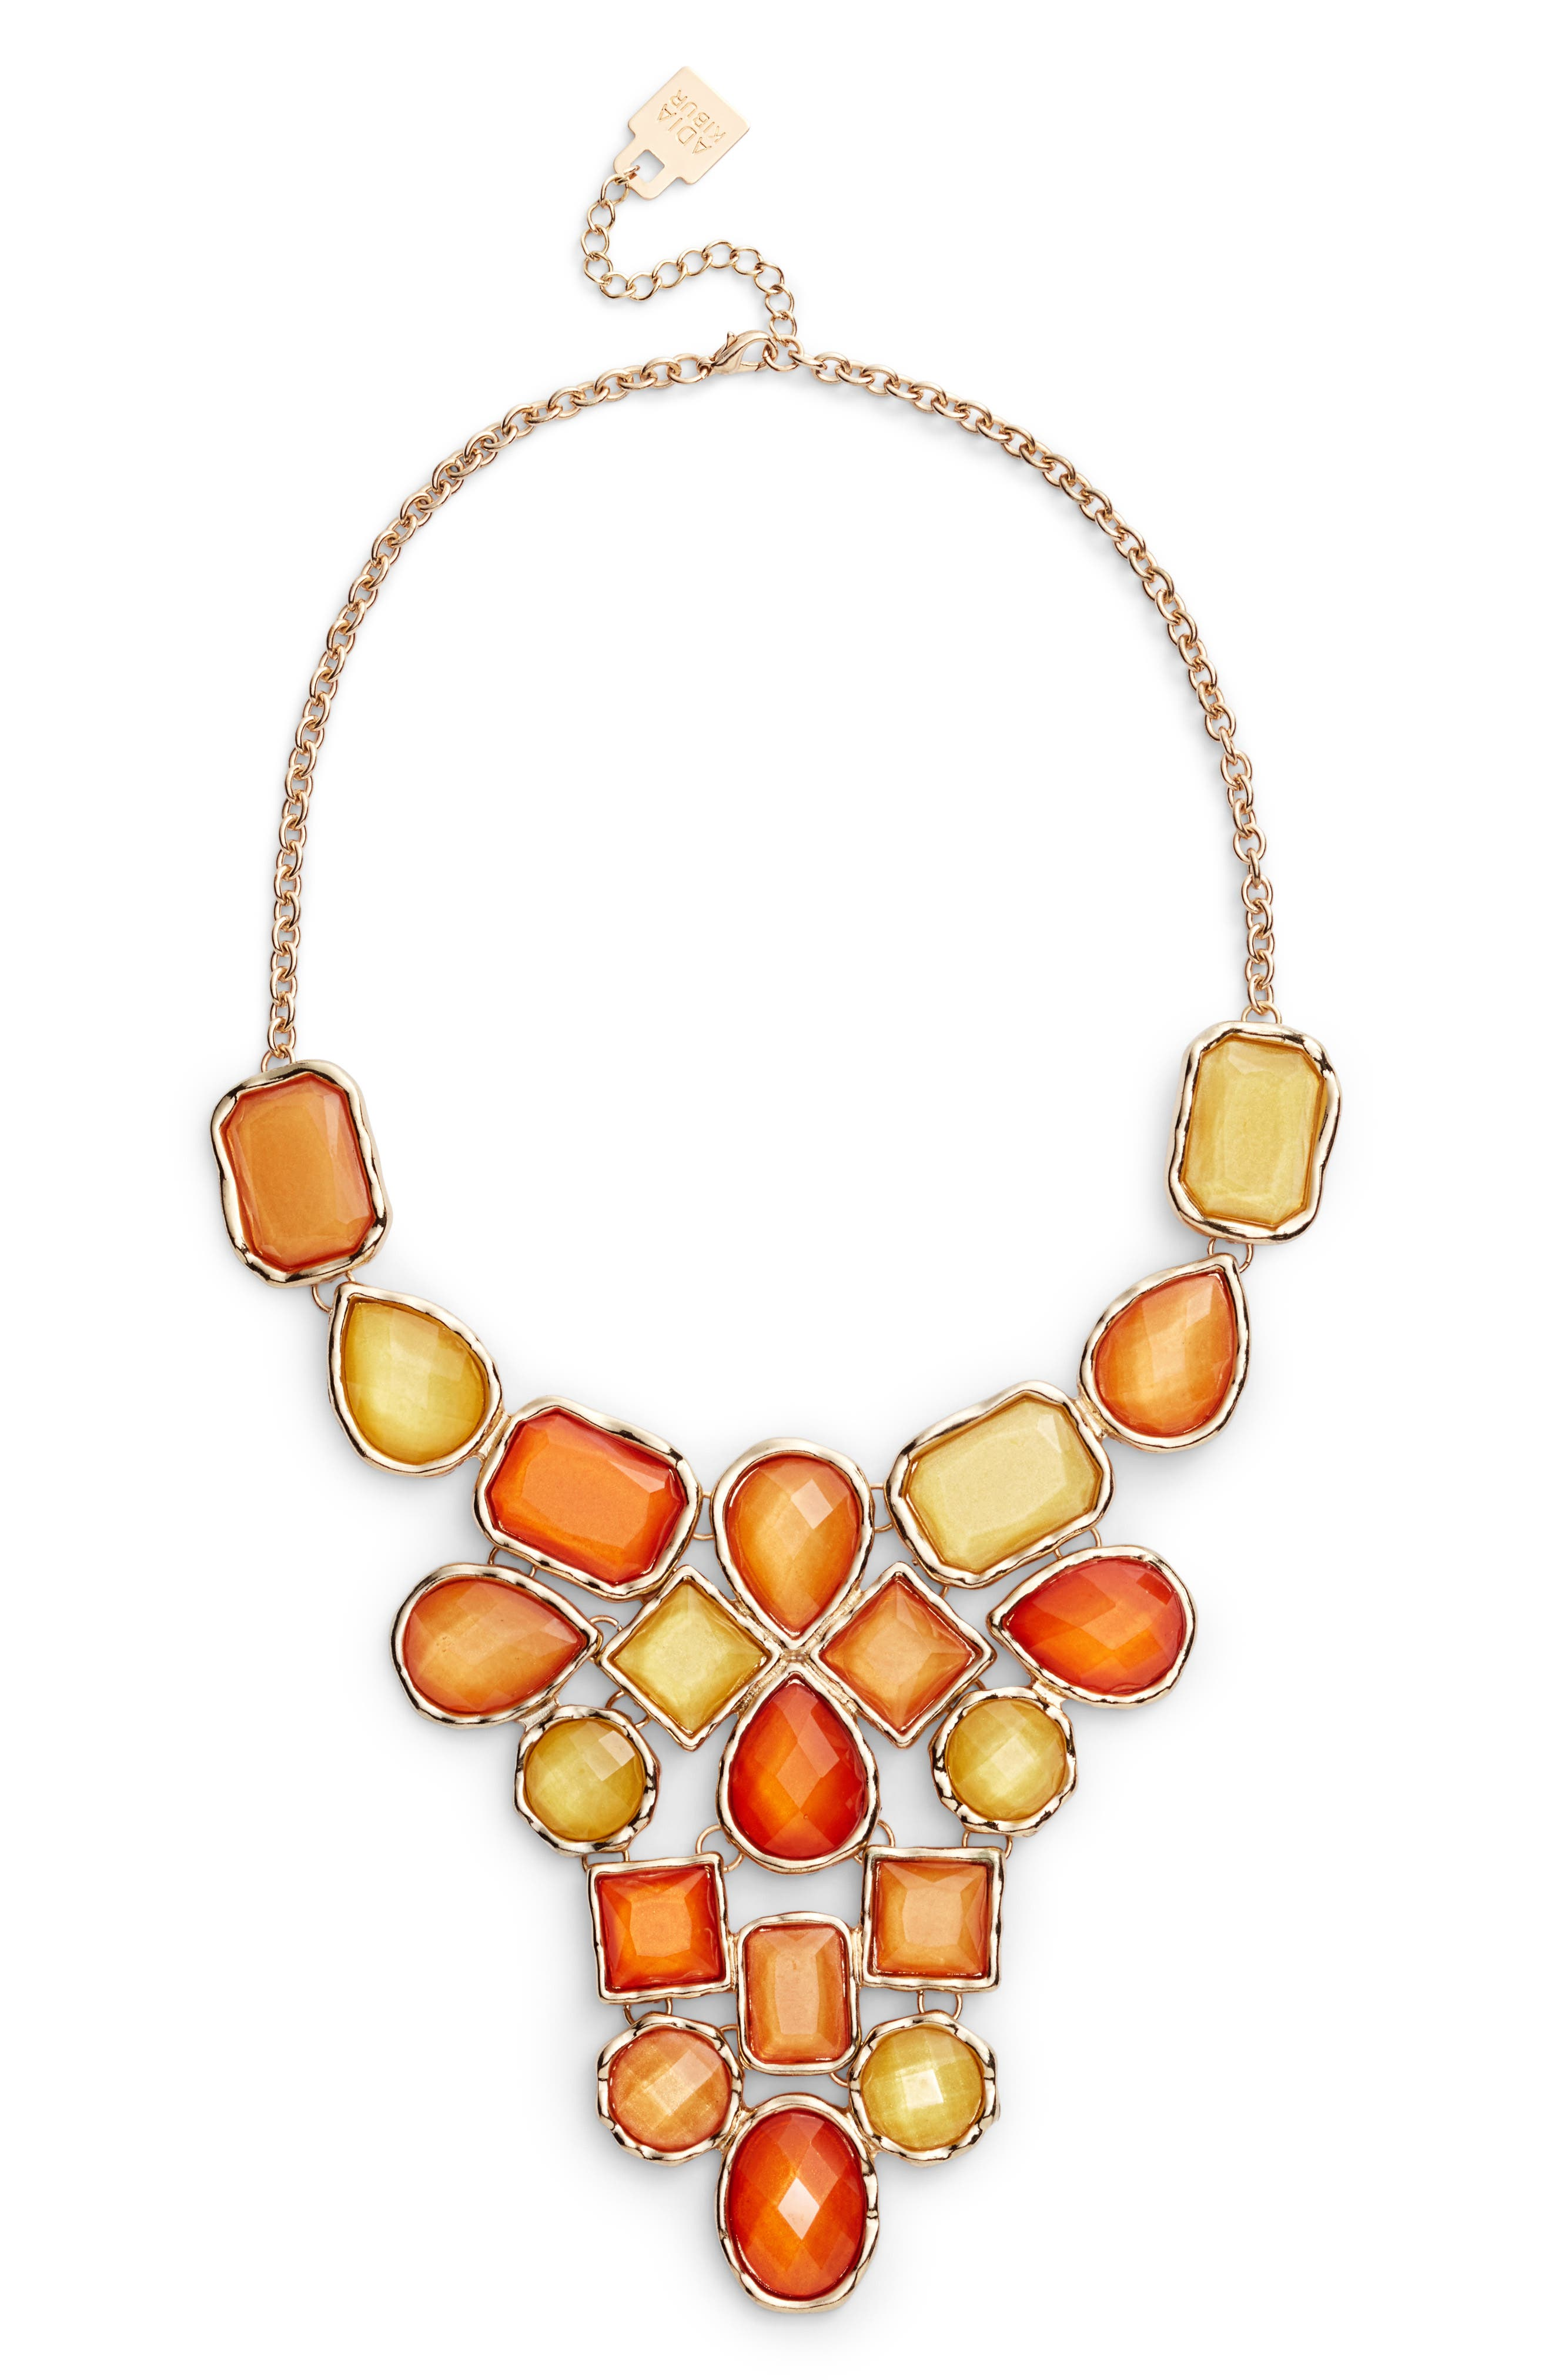 Stone Statement Necklace,                             Alternate thumbnail 2, color,                             Orange